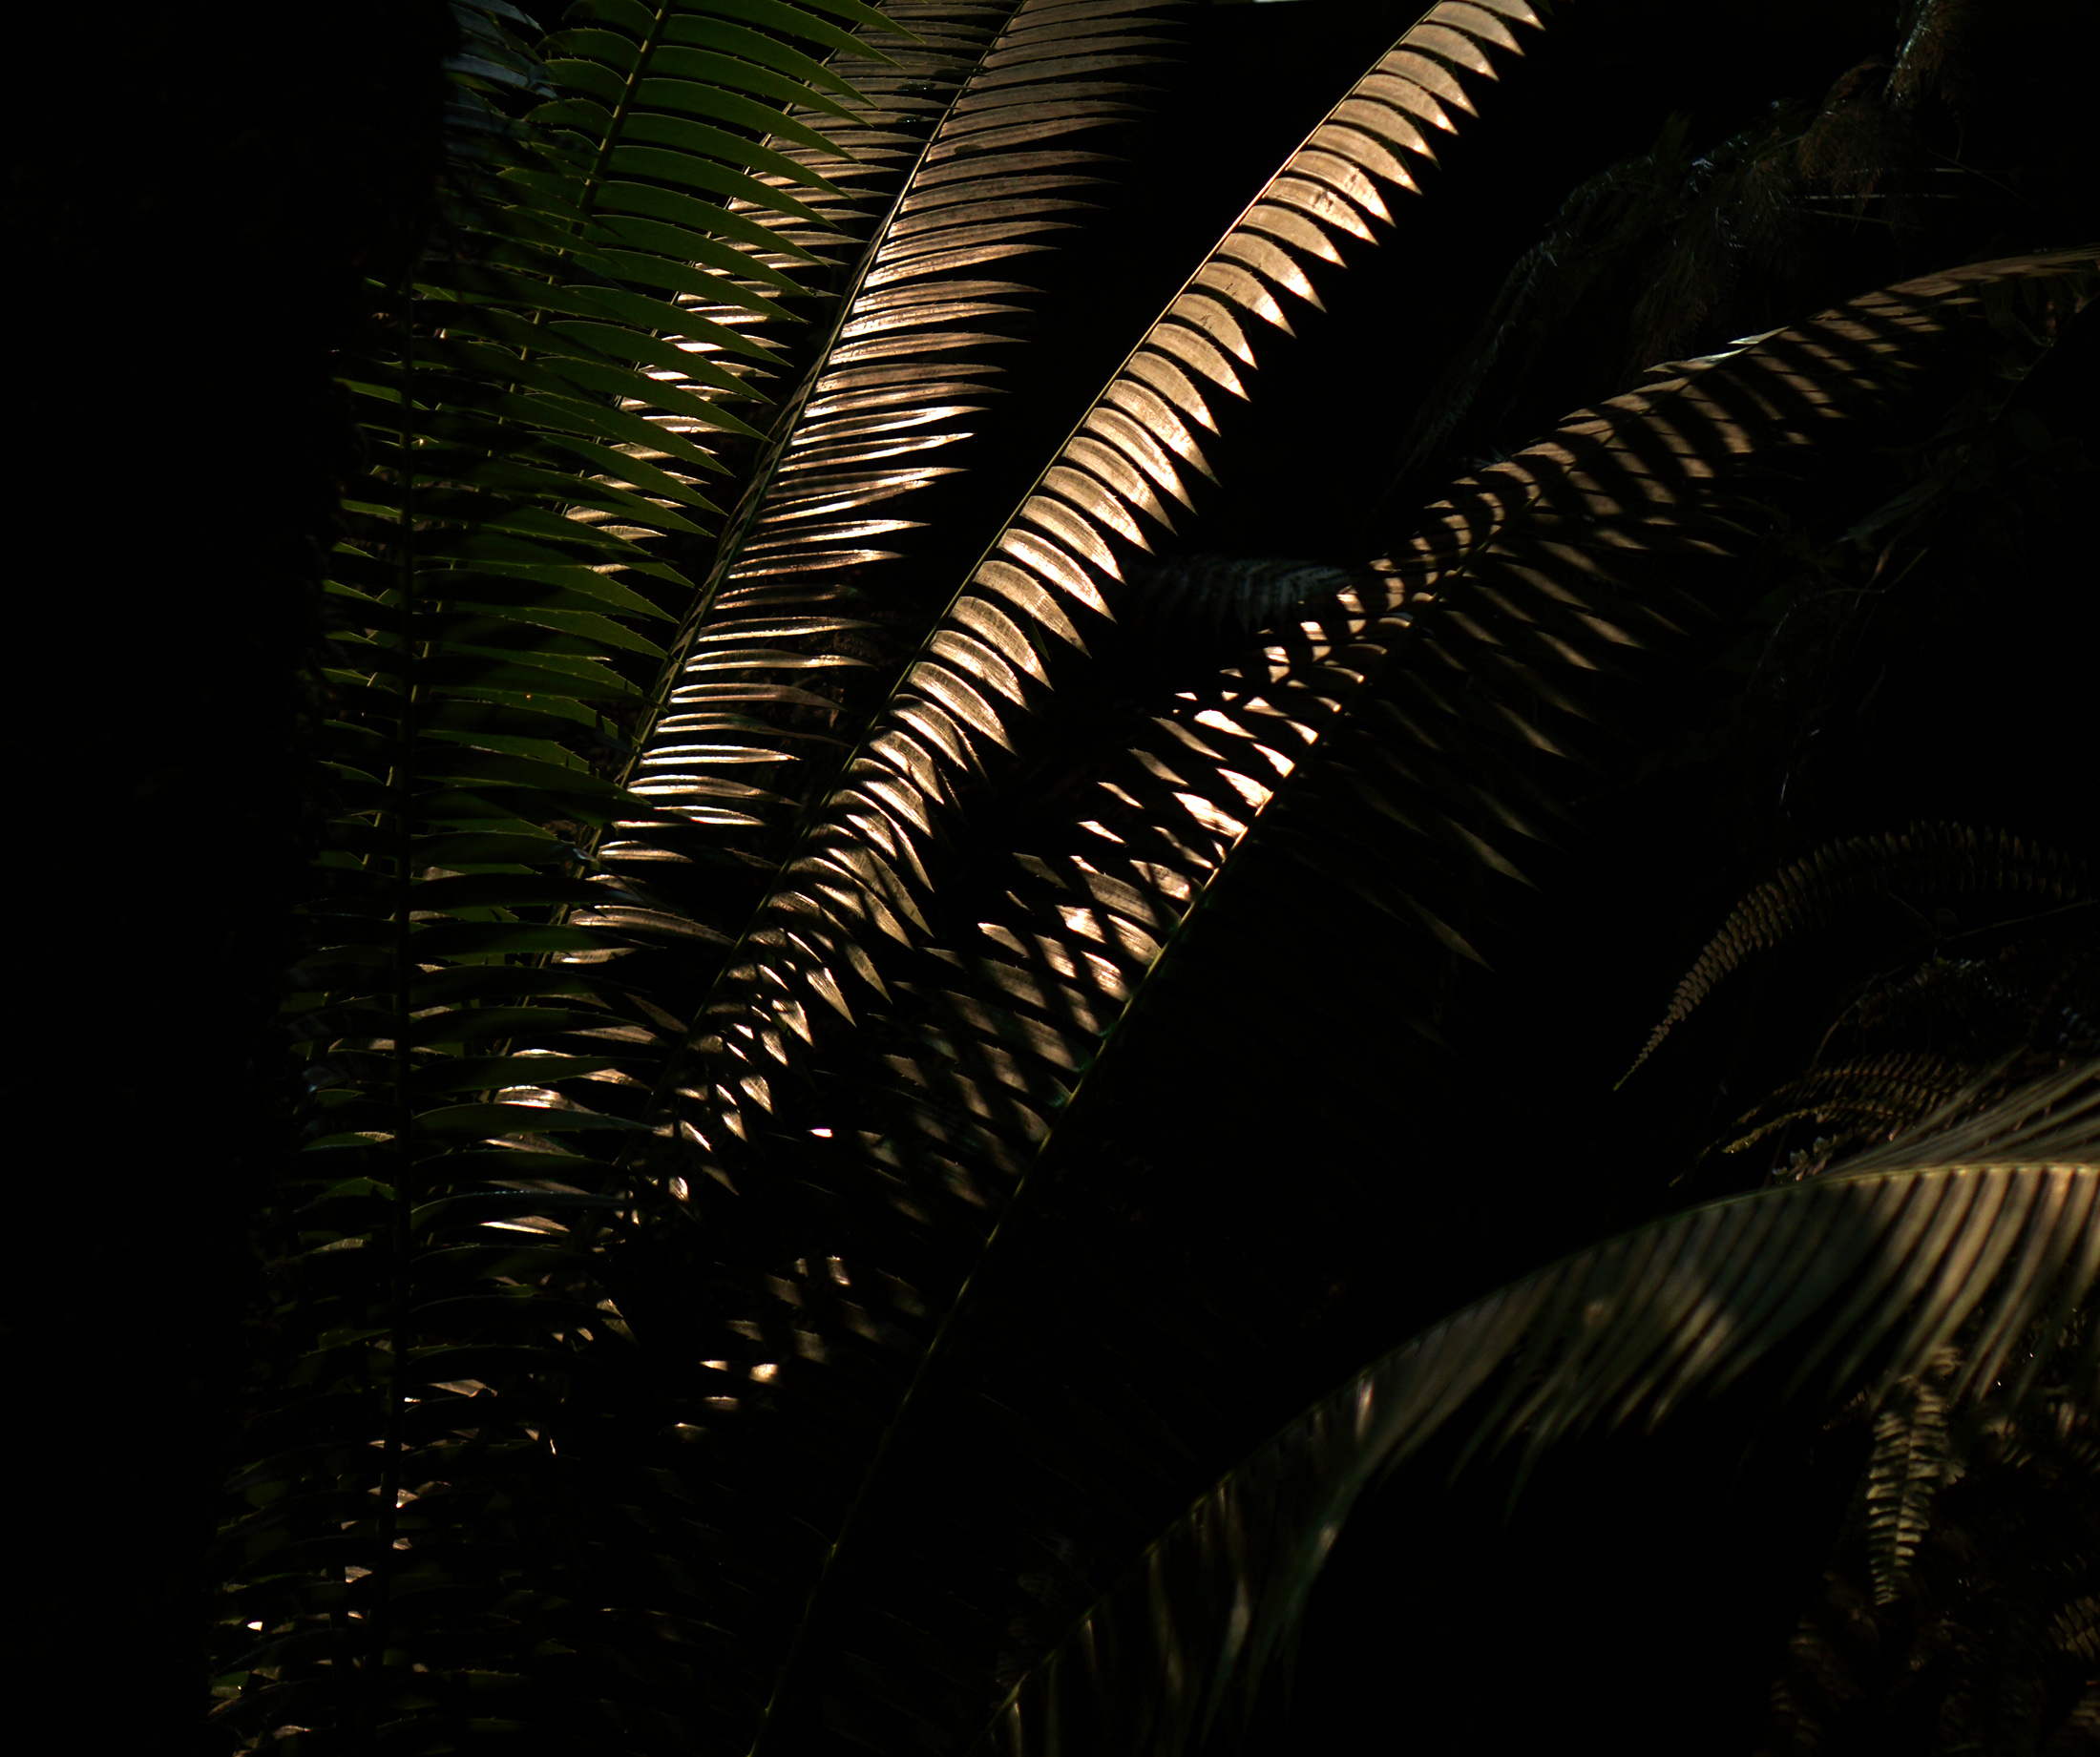 Fern fronds in the Garfield Park Conservatory at night, Chicago / Darker than Green